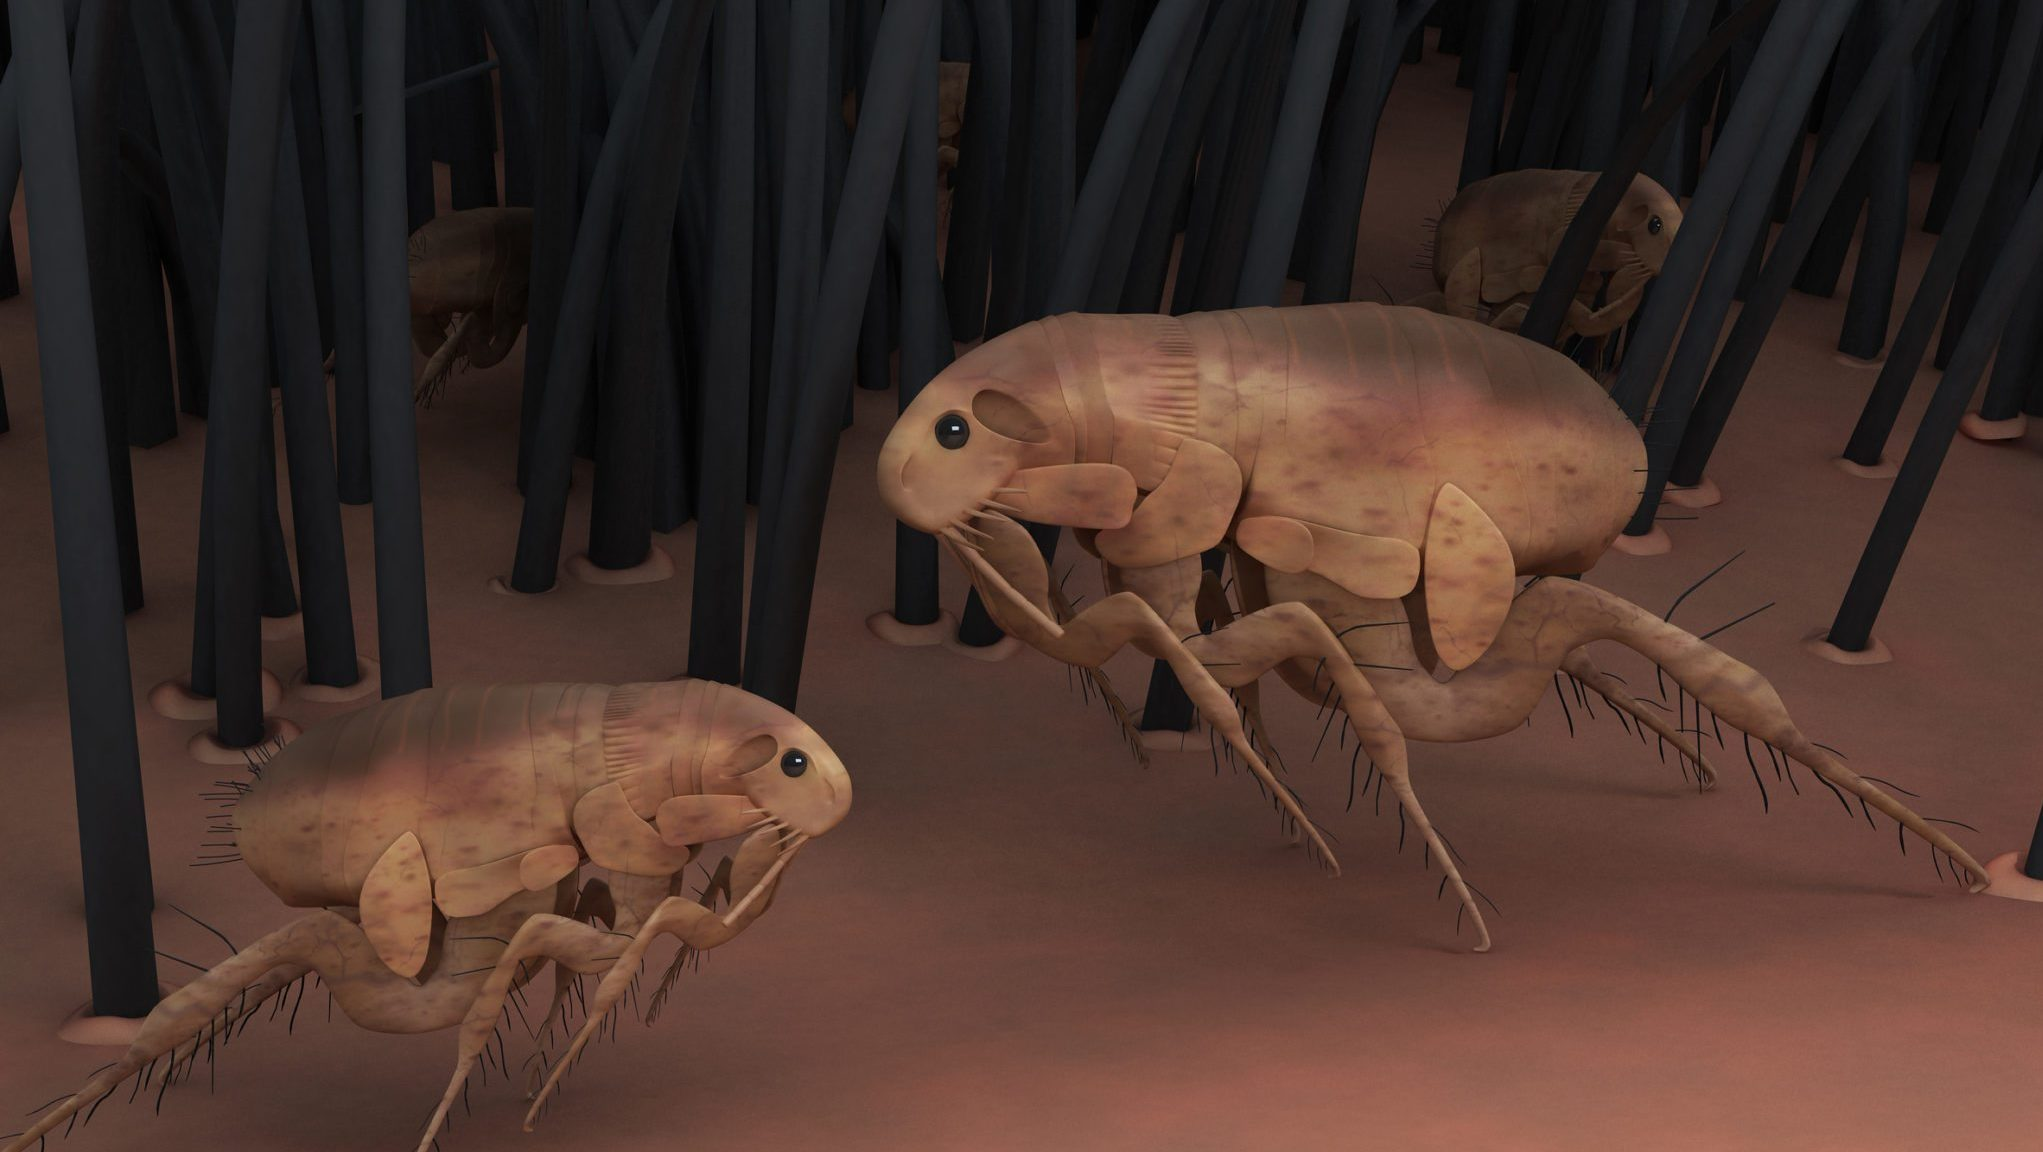 3D rendering of animal fleas